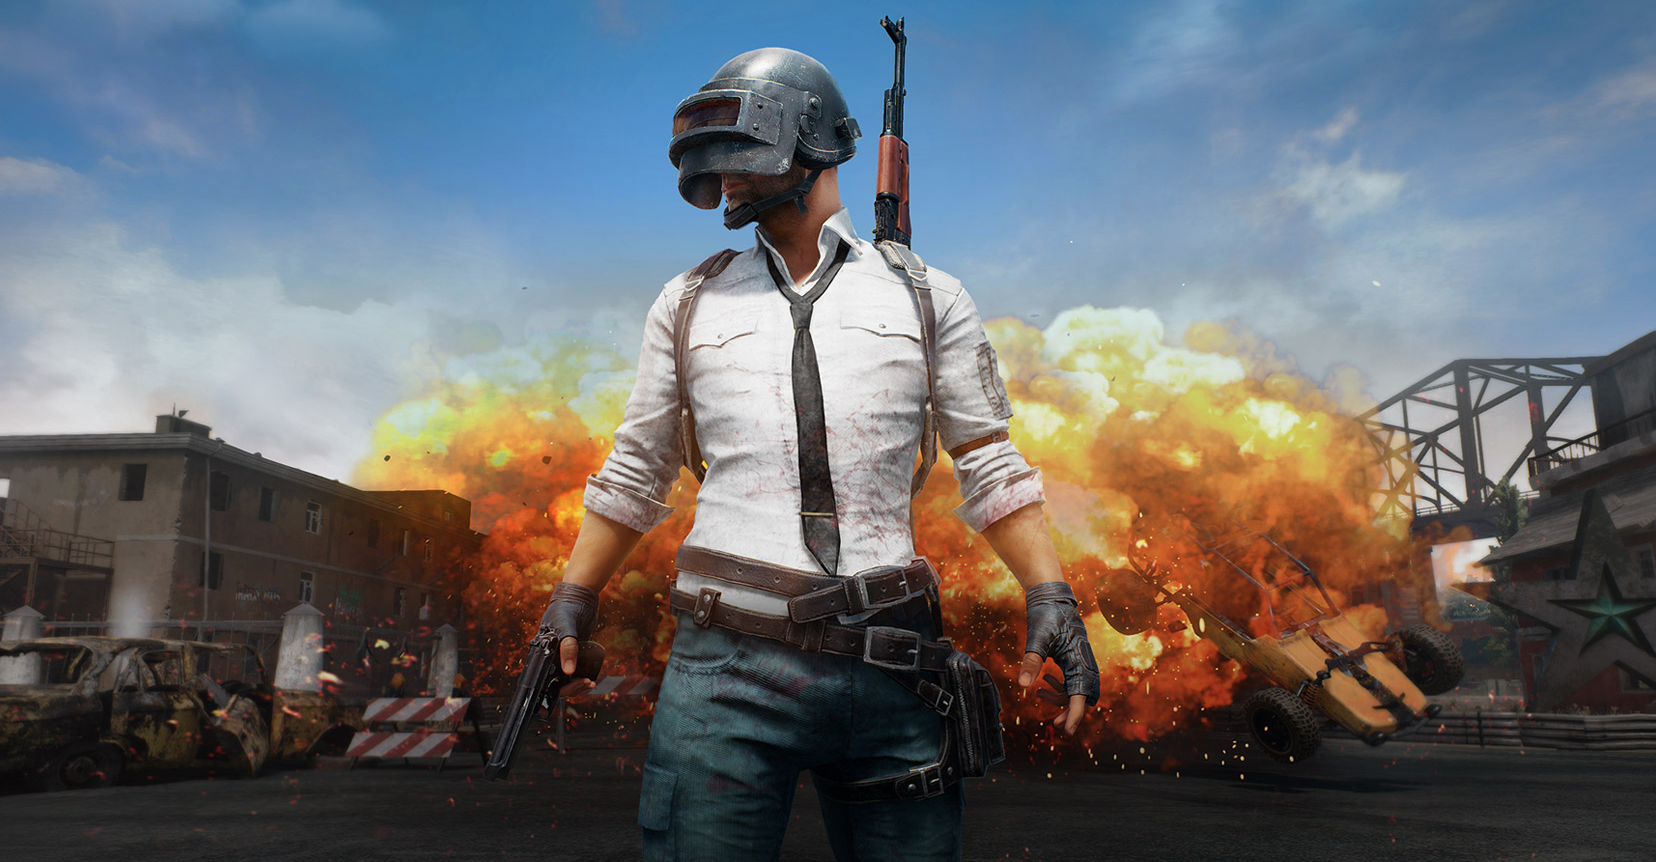 PlayerUnknown's Battlegrounds is now it's own company, PUBG Corp